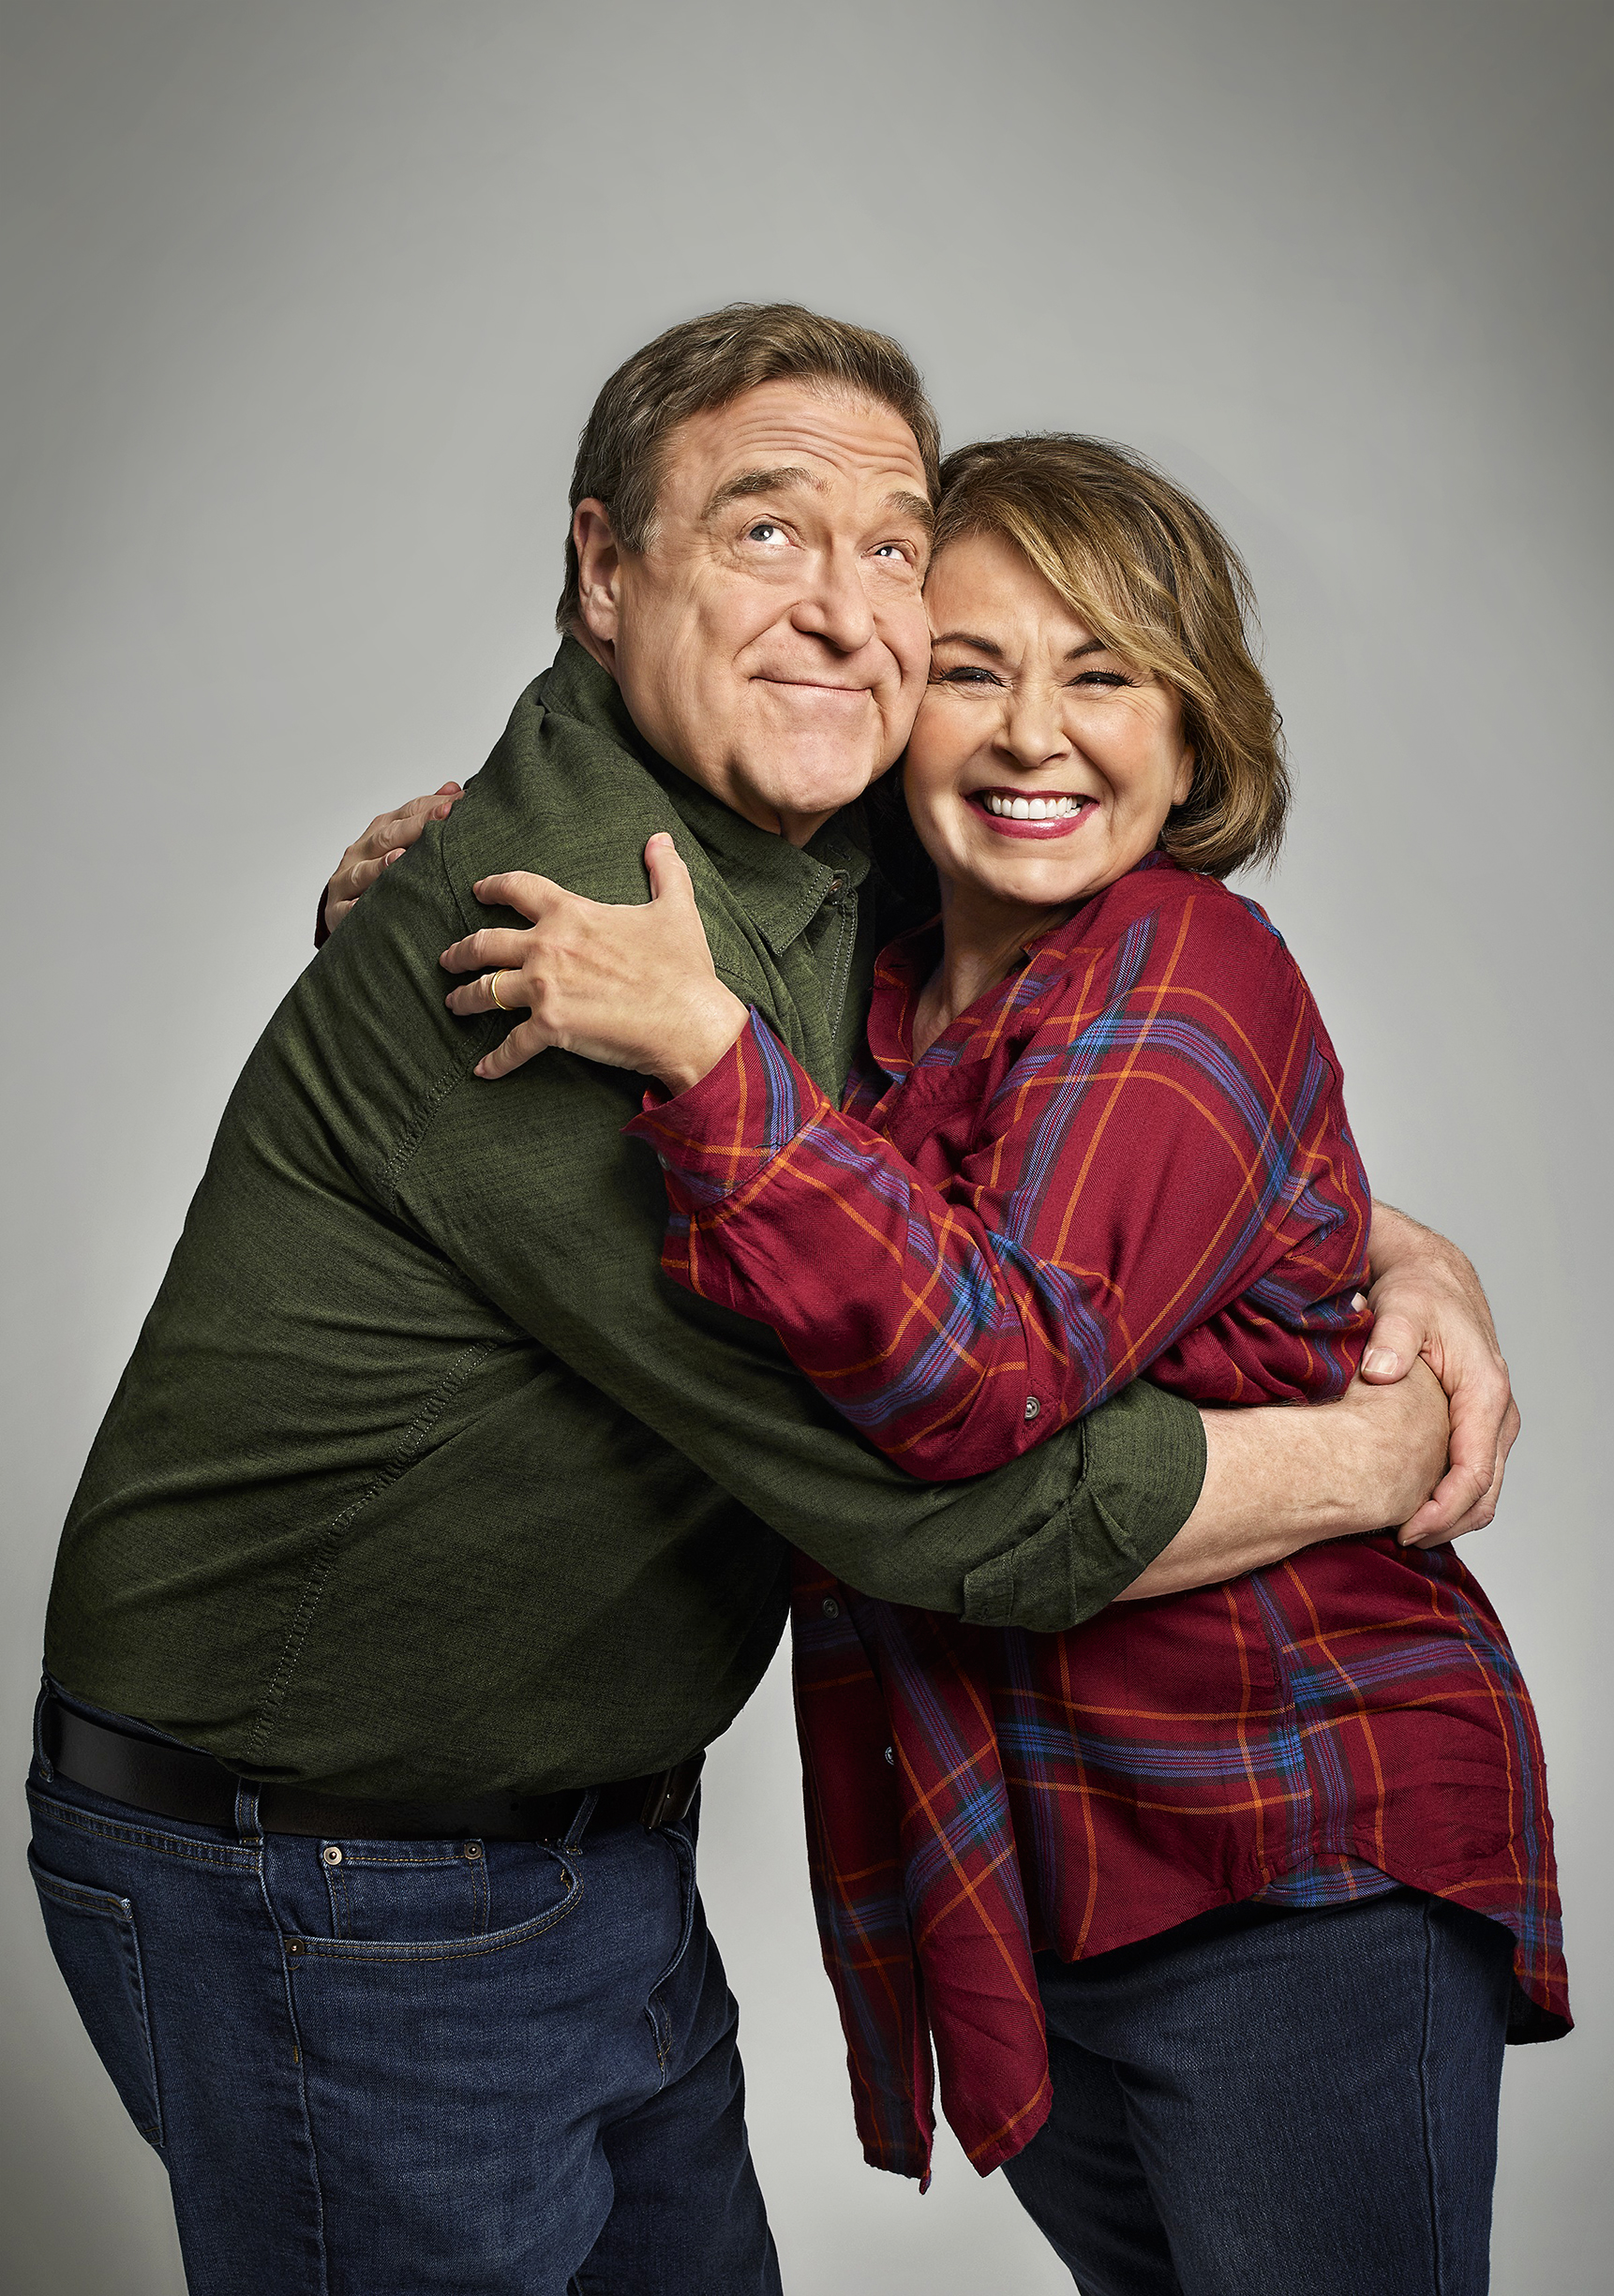 A Rosy Return John Goodman and Roseanne Barr are back, on ABC's Roseanne revival. They joine a wave of smart family comedies